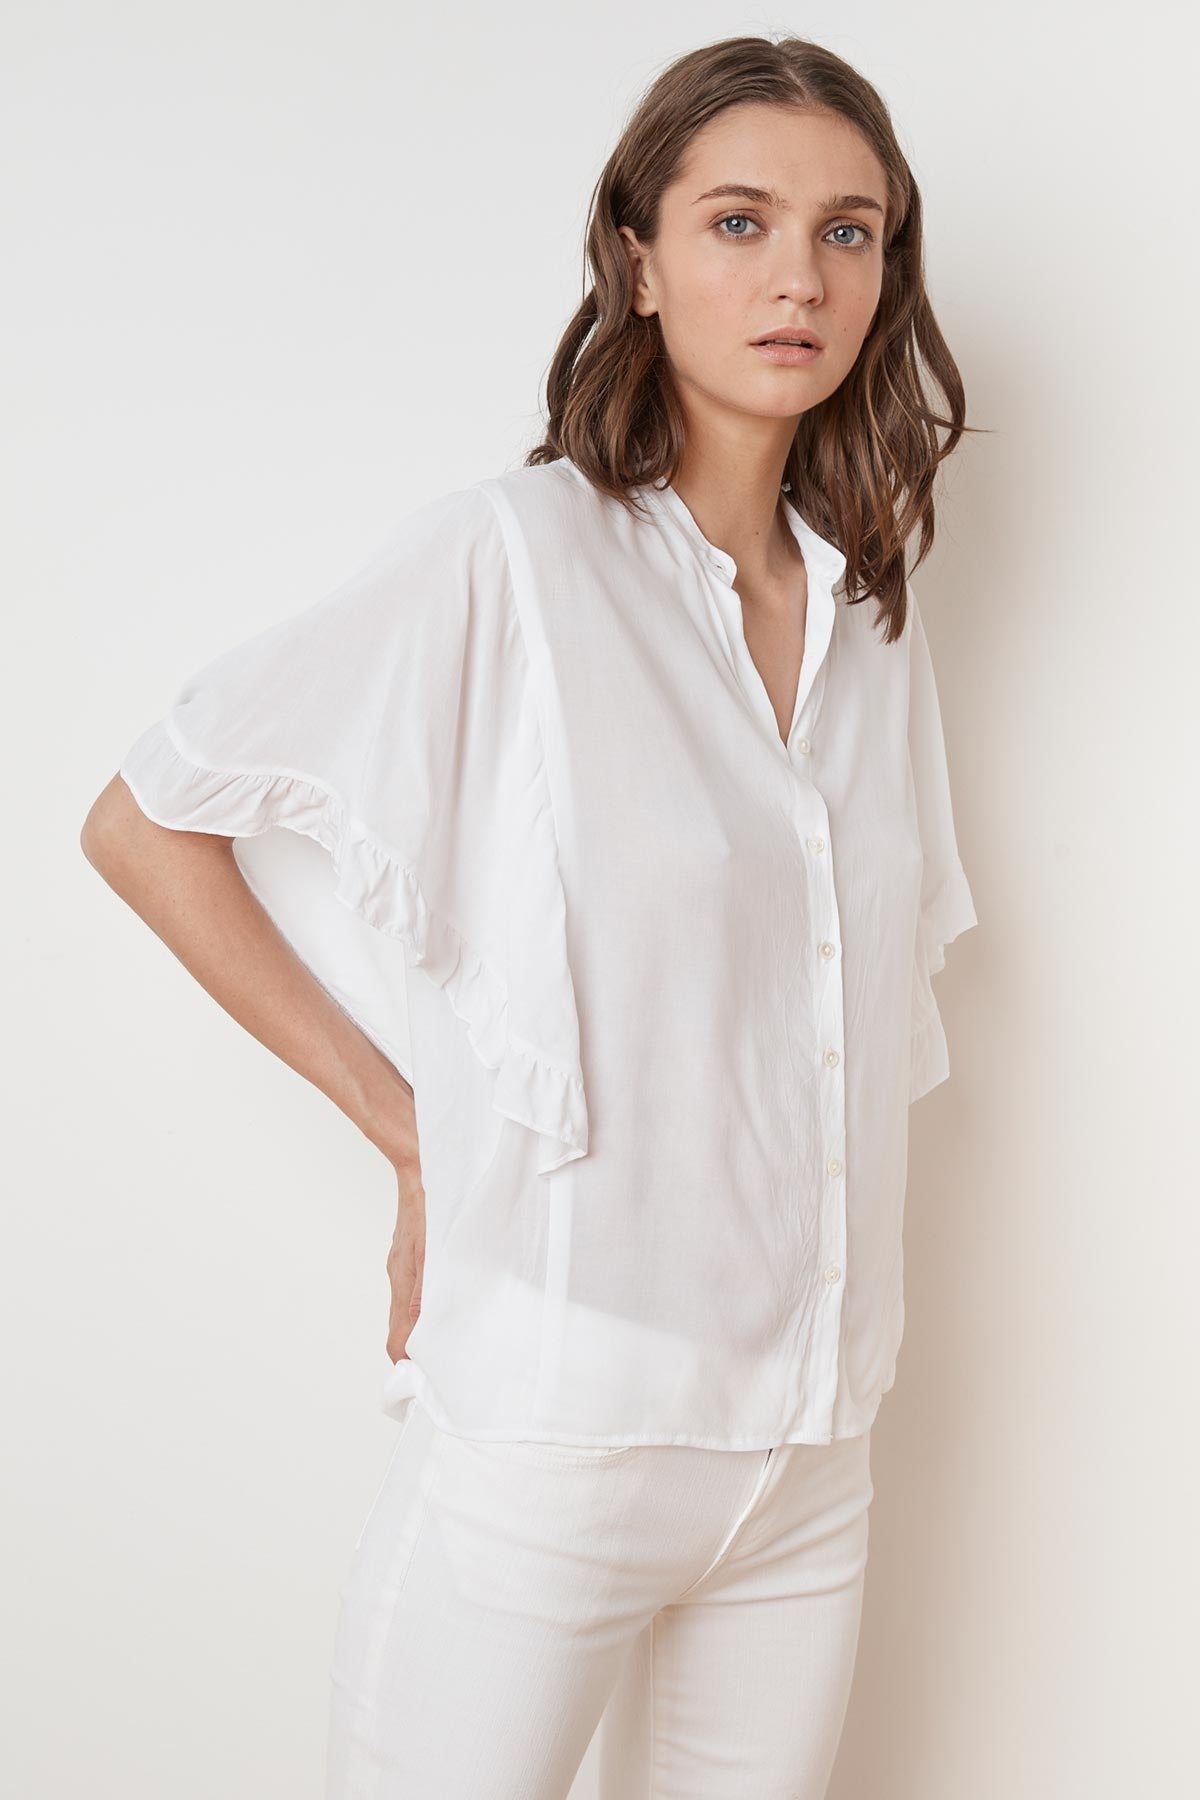 DARBY RAYON CHALLIS RUFFLE BUTTON UP TOP